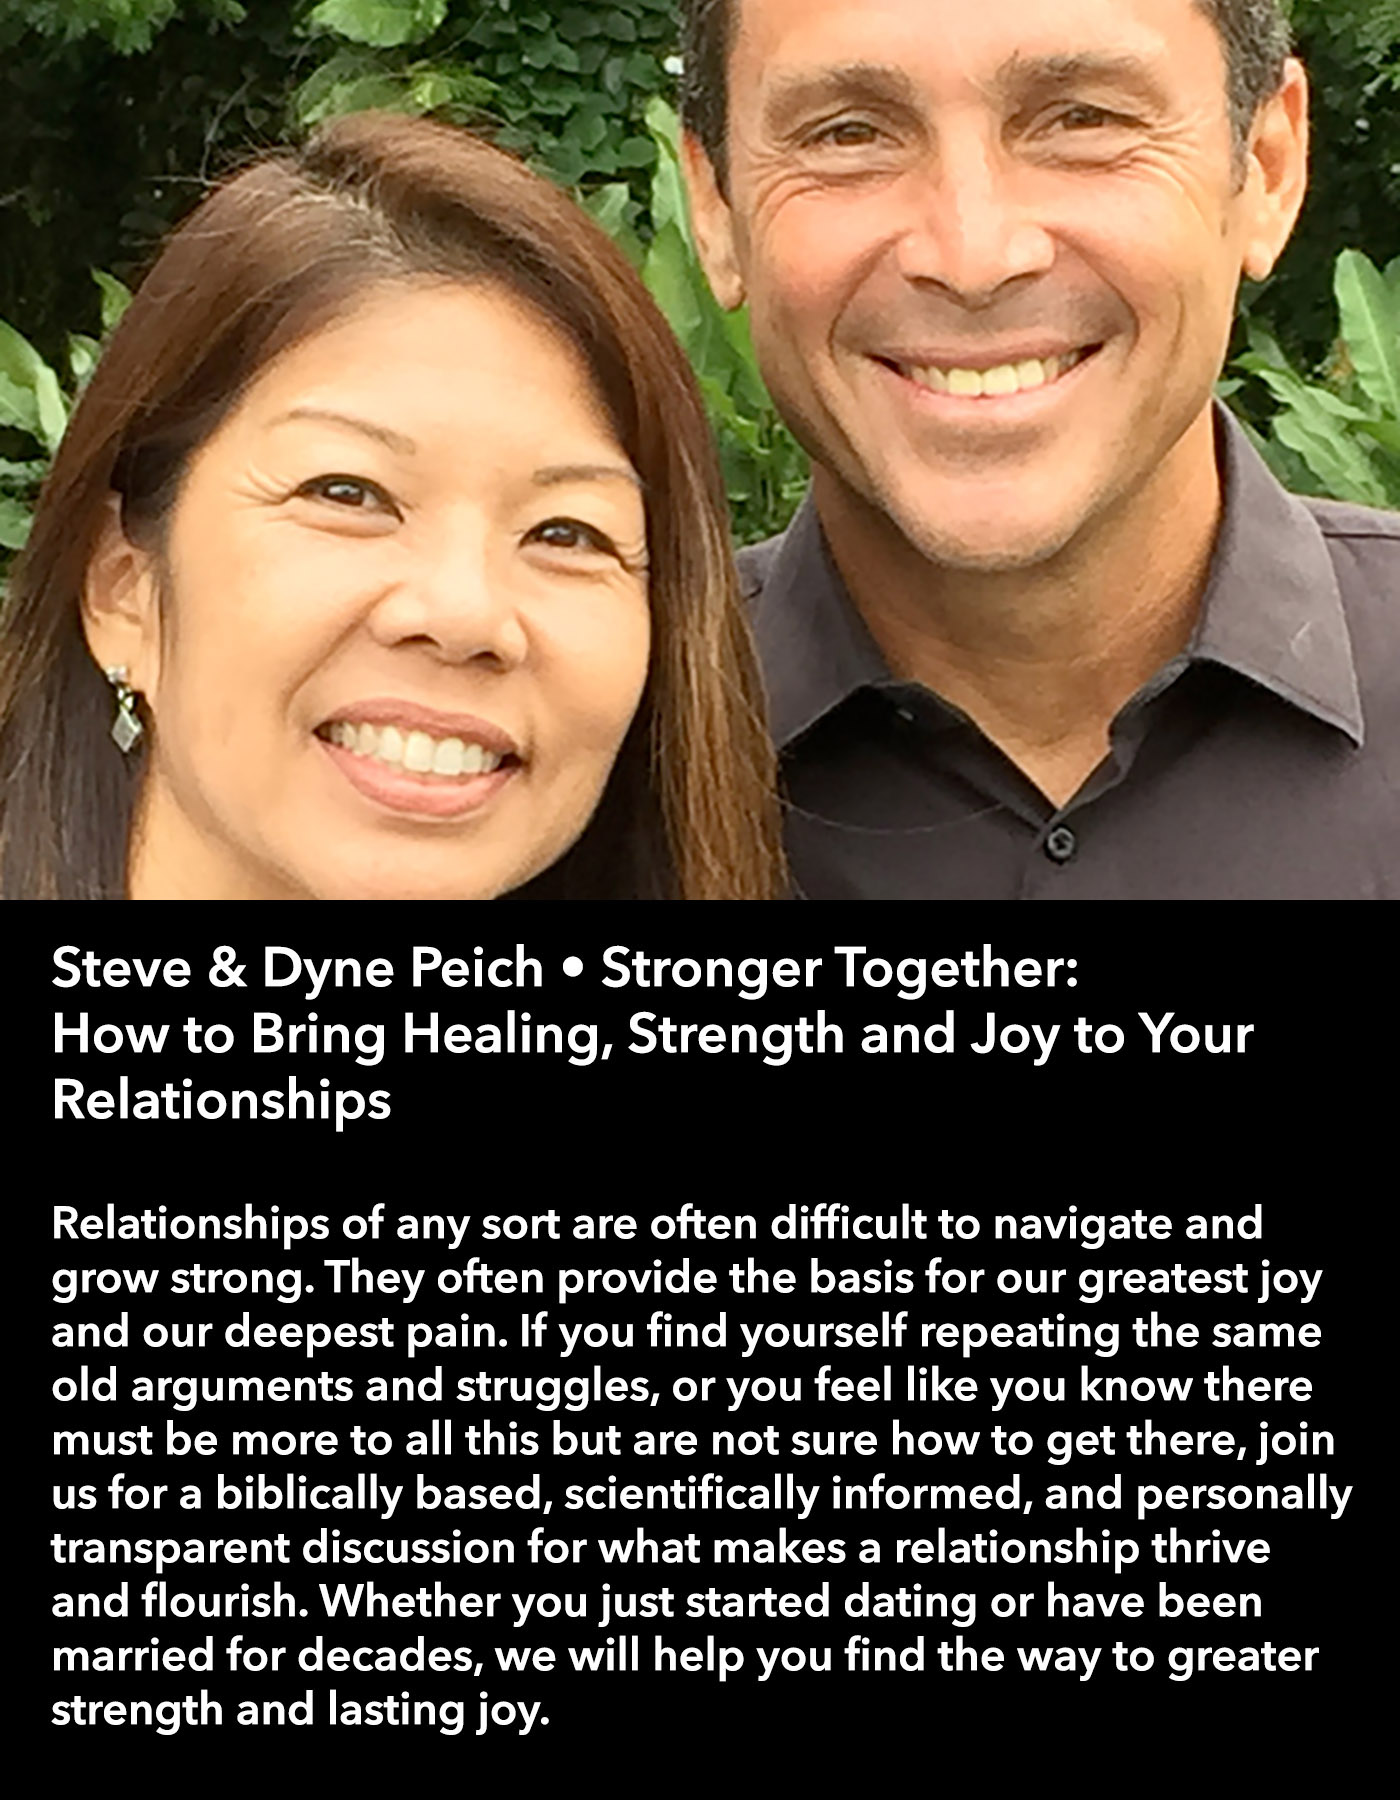 Steve & Dyne Peich • Stronger Together: How to Bring Healing, Strength and Joy to Your Relationships • Saturday Morning, March 18 • 10:30 – 11:45 am